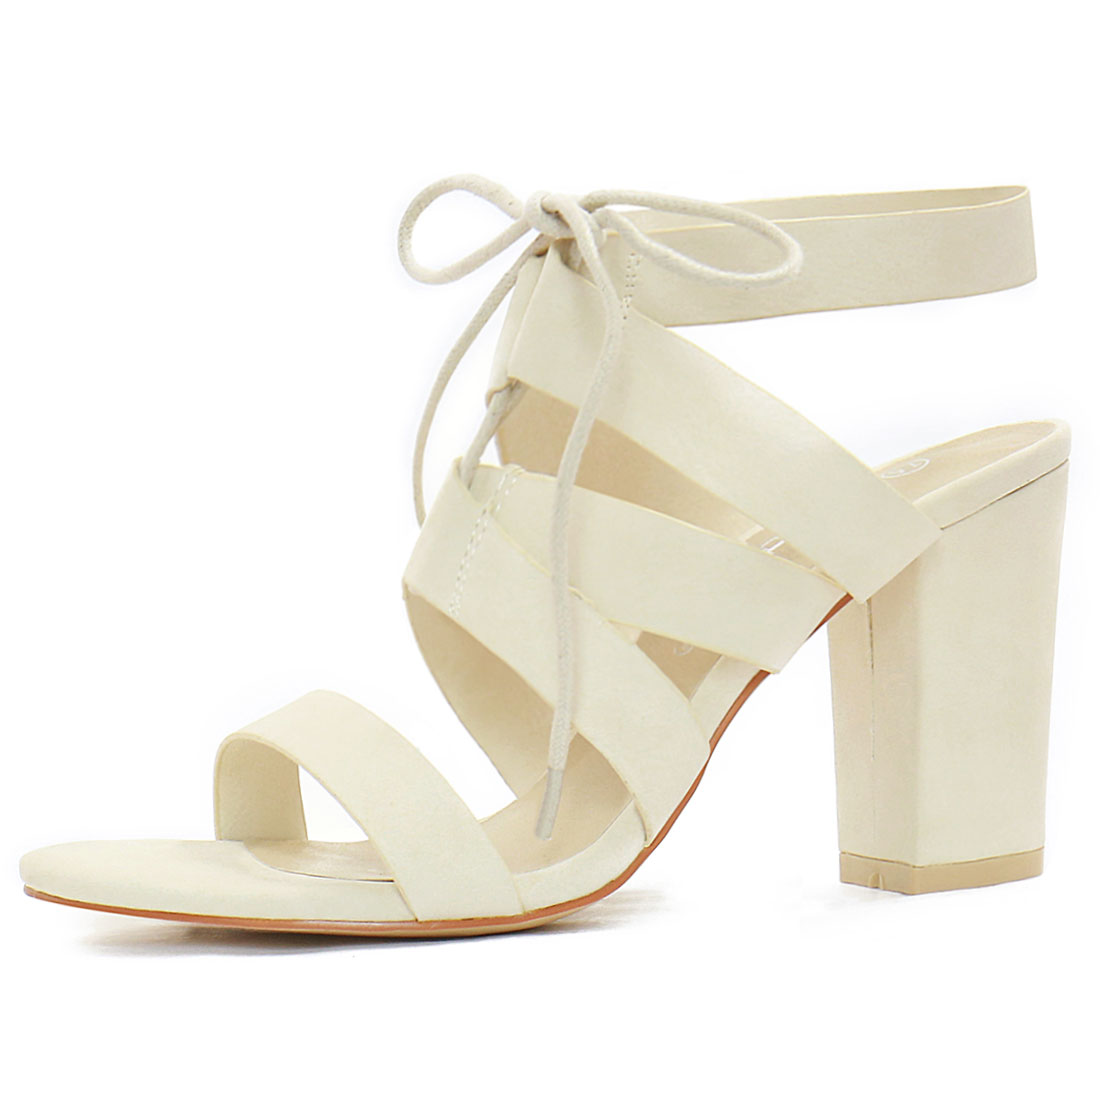 Women Chunky High Heels Cutout Detail Lace Up Sandals Ivory US 6